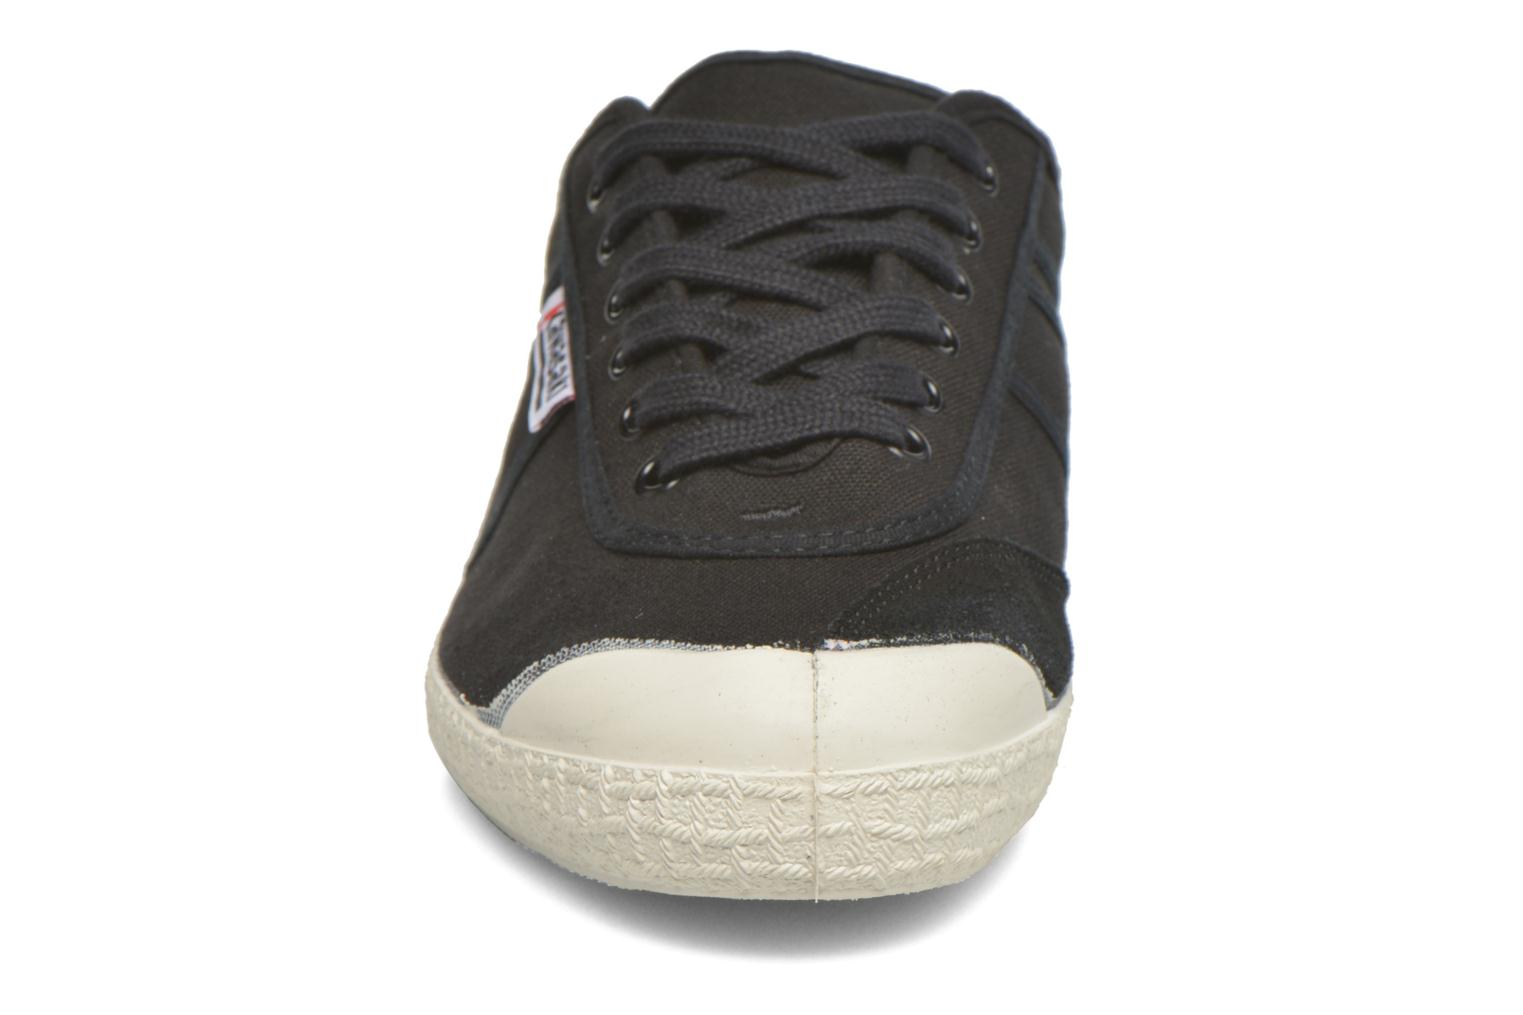 Basic Black / white outsole